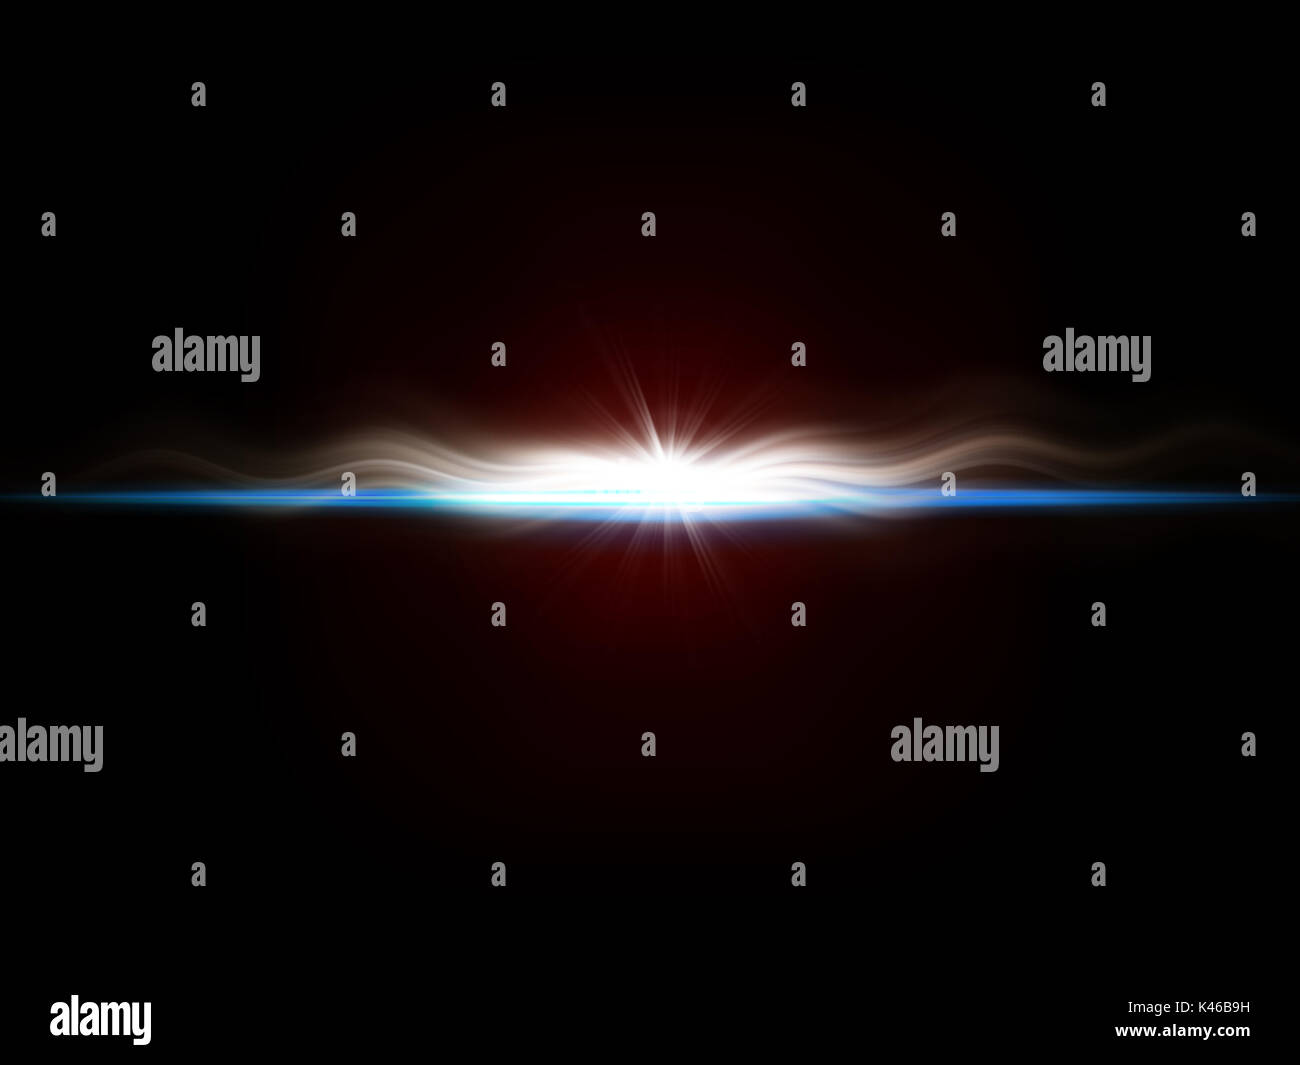 background image of defocused abstract lights and beam of light over dark background - Stock Image